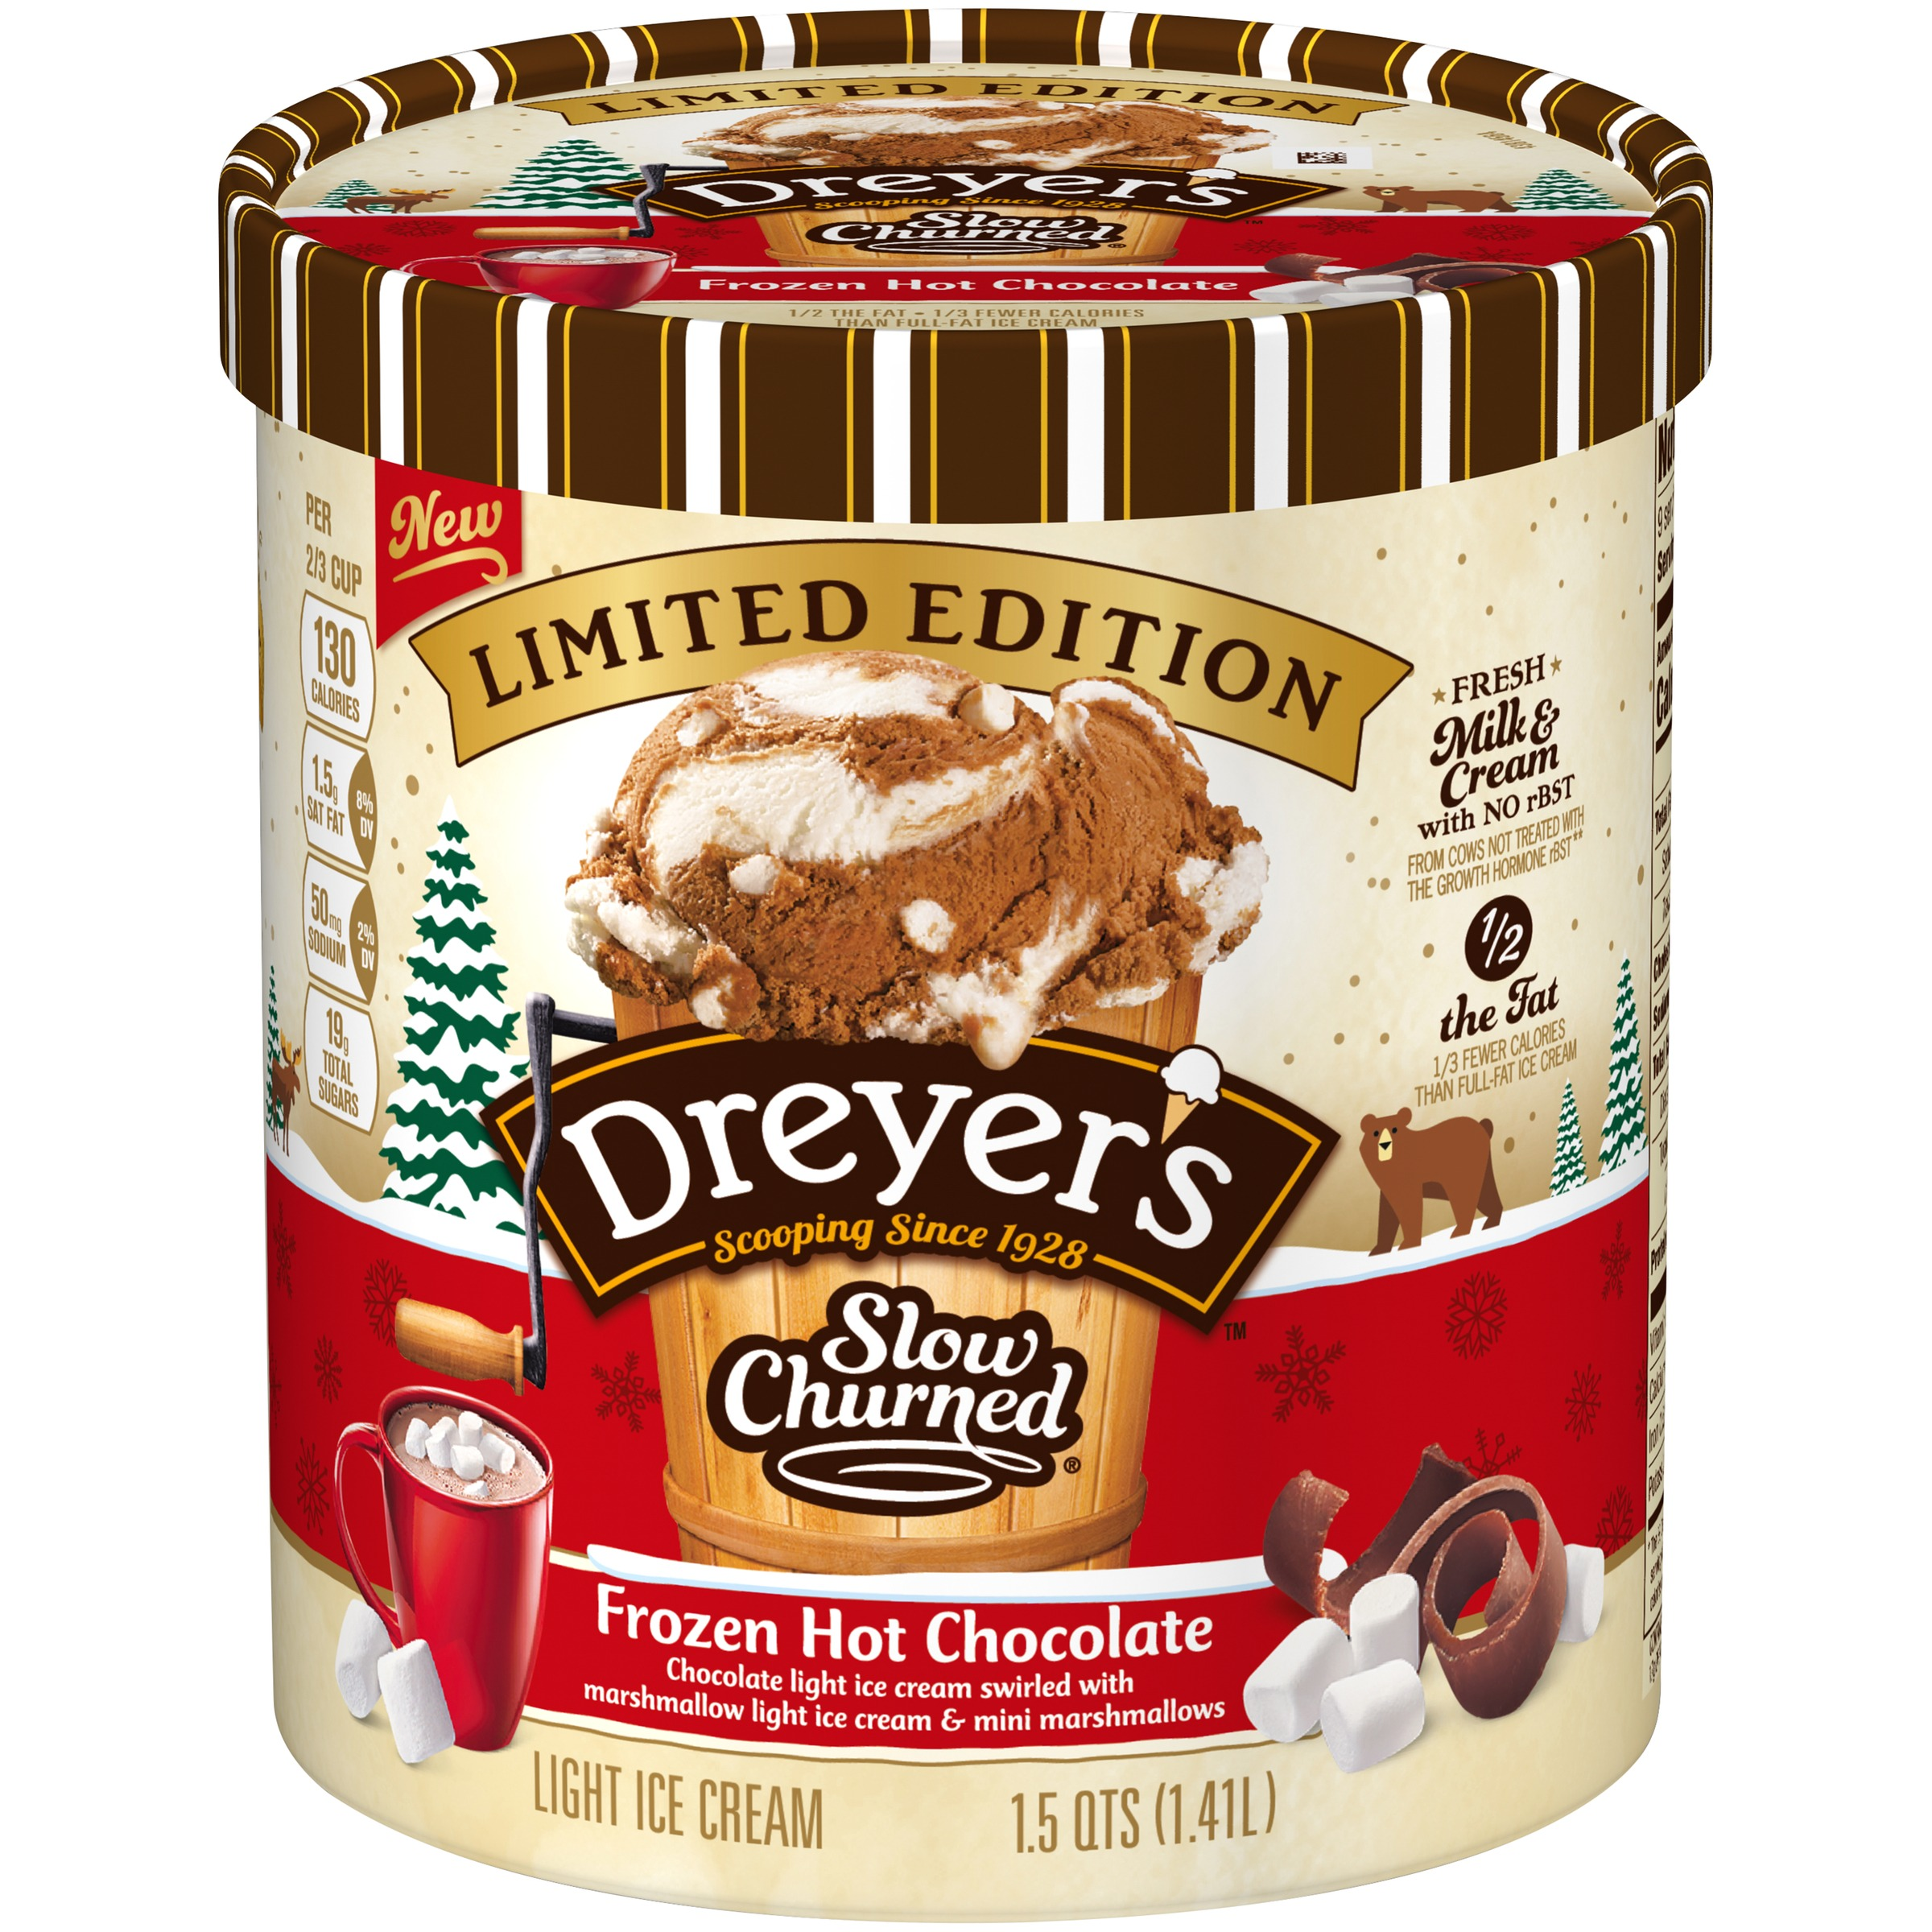 EDY S DREYER S SLOW CHURNED Limited Edition Light Ice Cream 48 fl